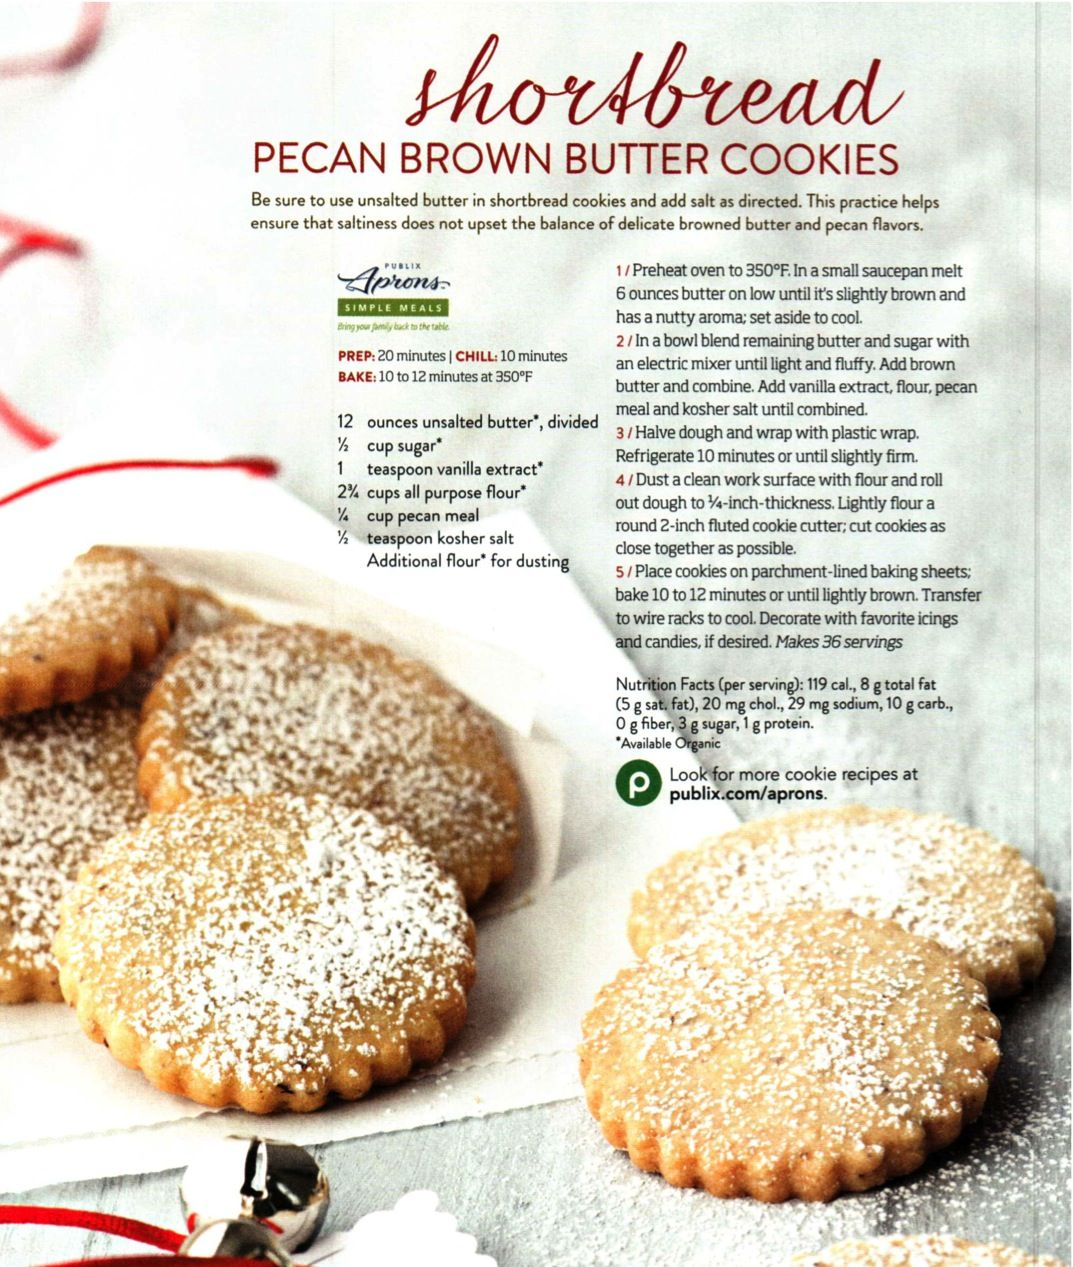 Shortbread Pecan Brown Butter Cookies